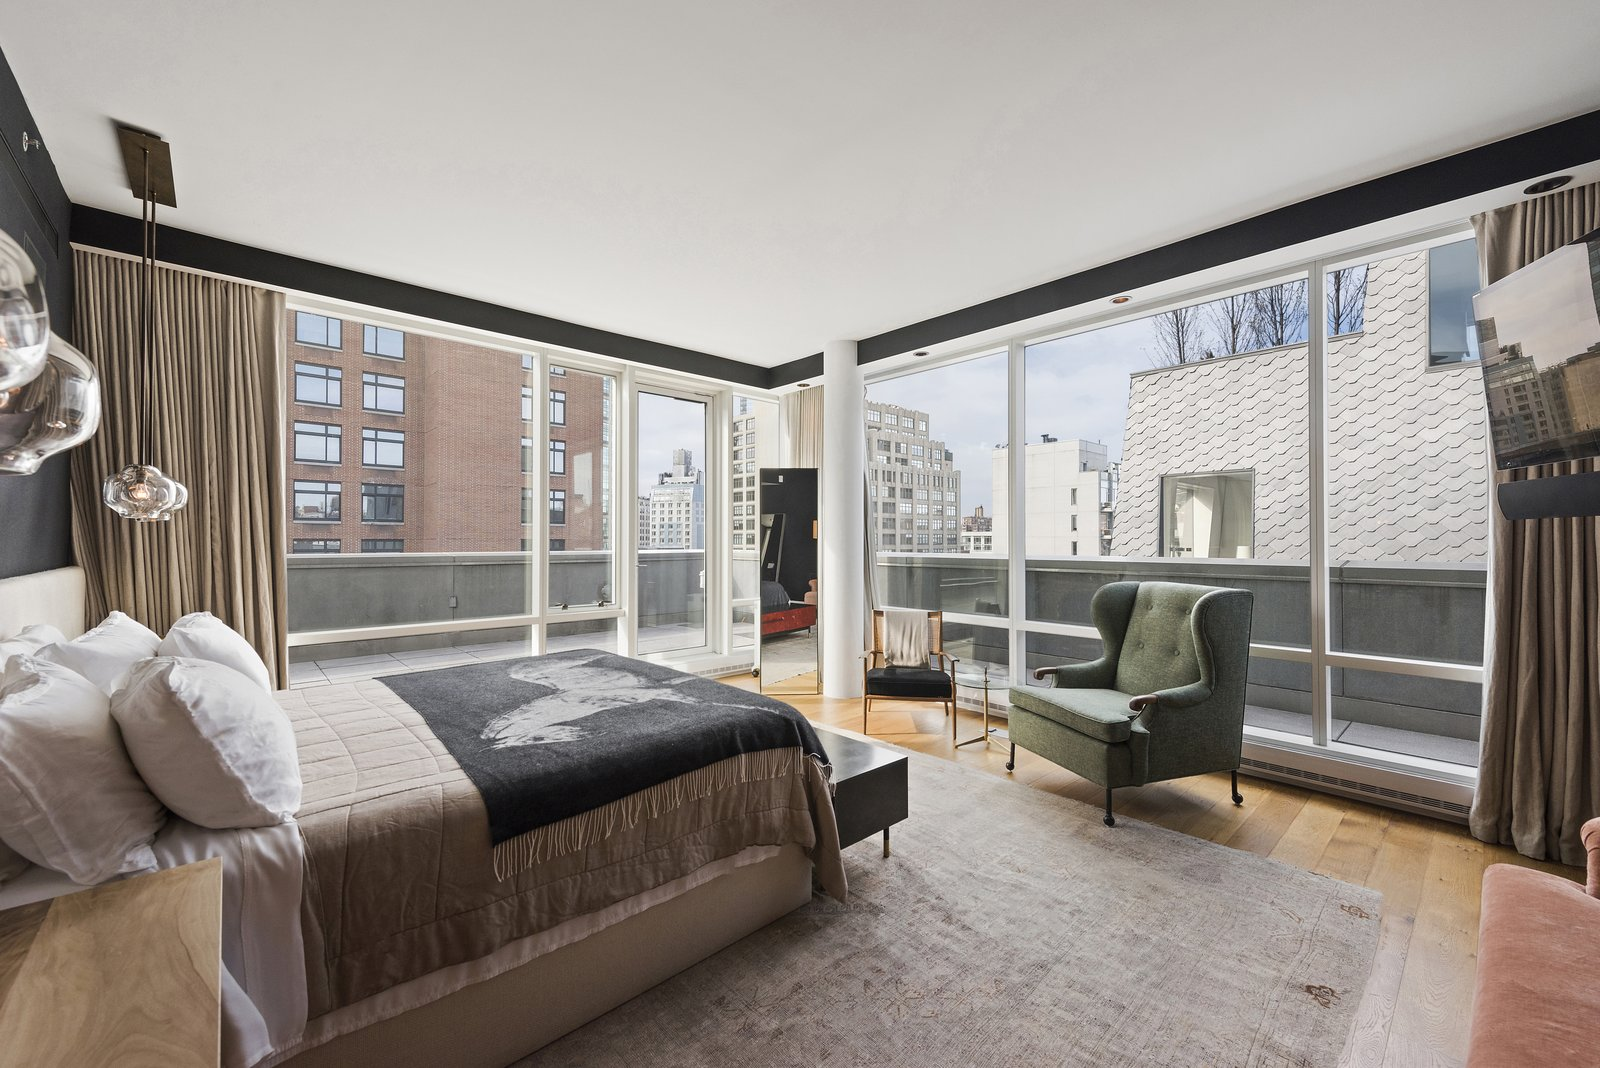 The master bedroom features floor-to-ceiling windows and terrace access as well as a deluxe ensuite bathroom.